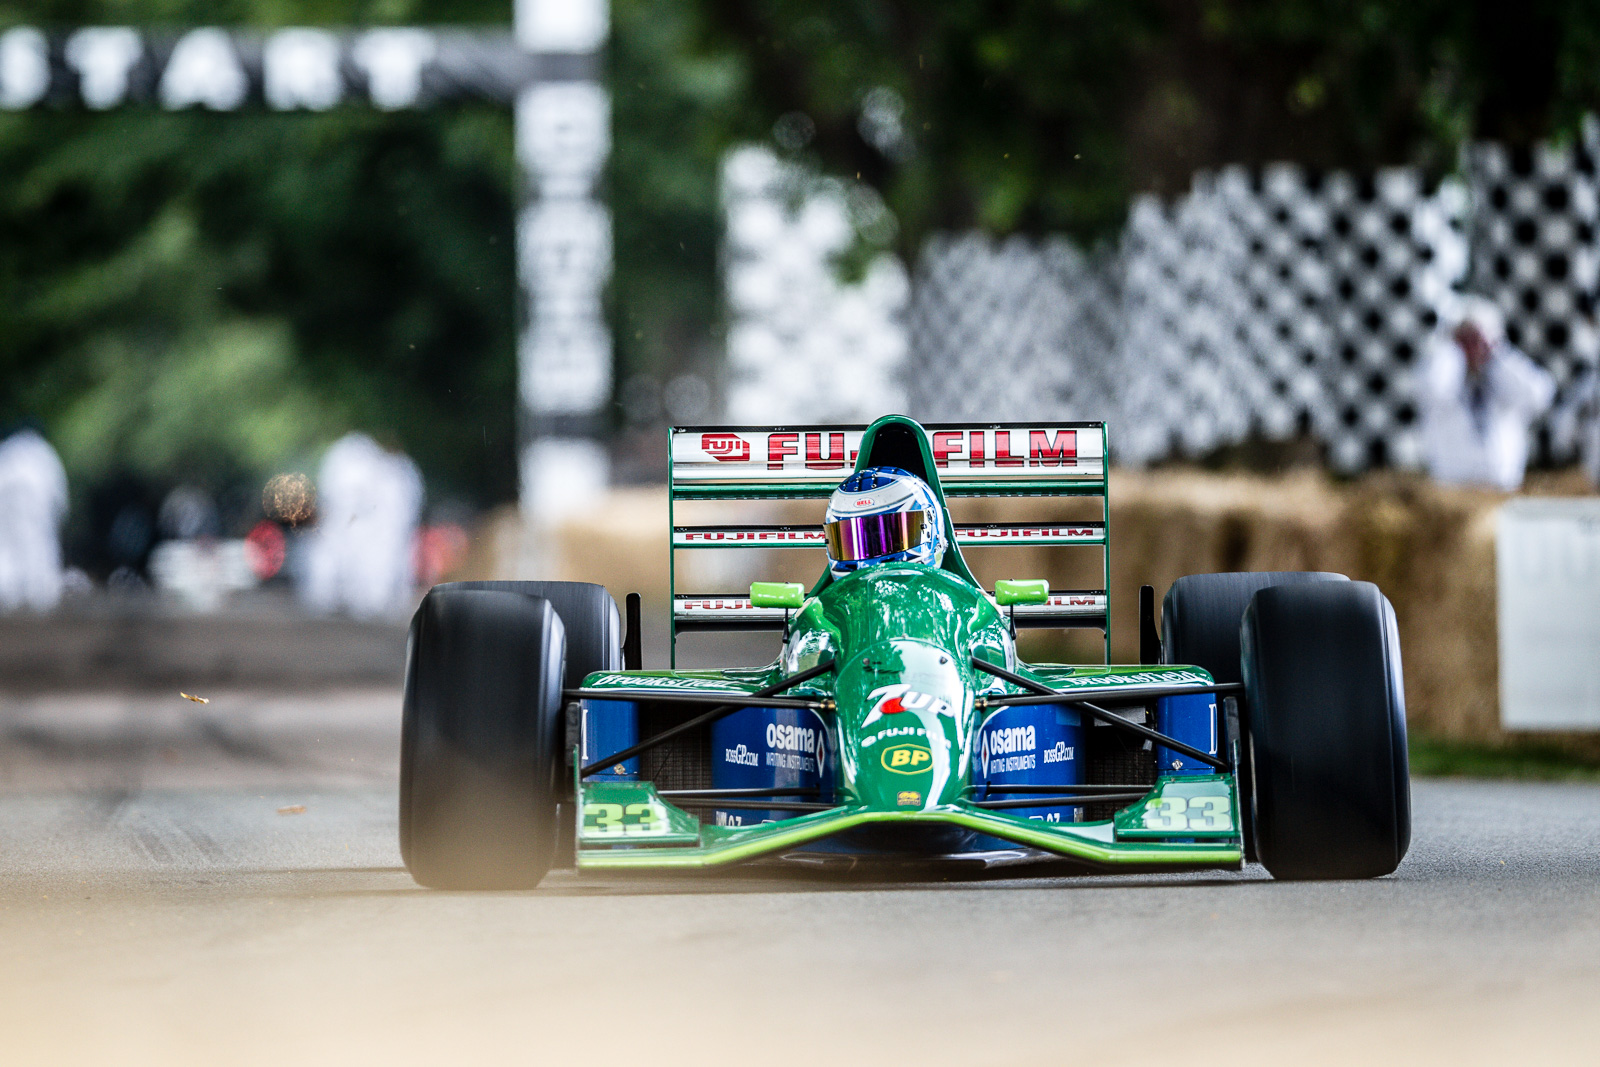 Formula 1 car racing down the straight at the goodwood Festival of Speed